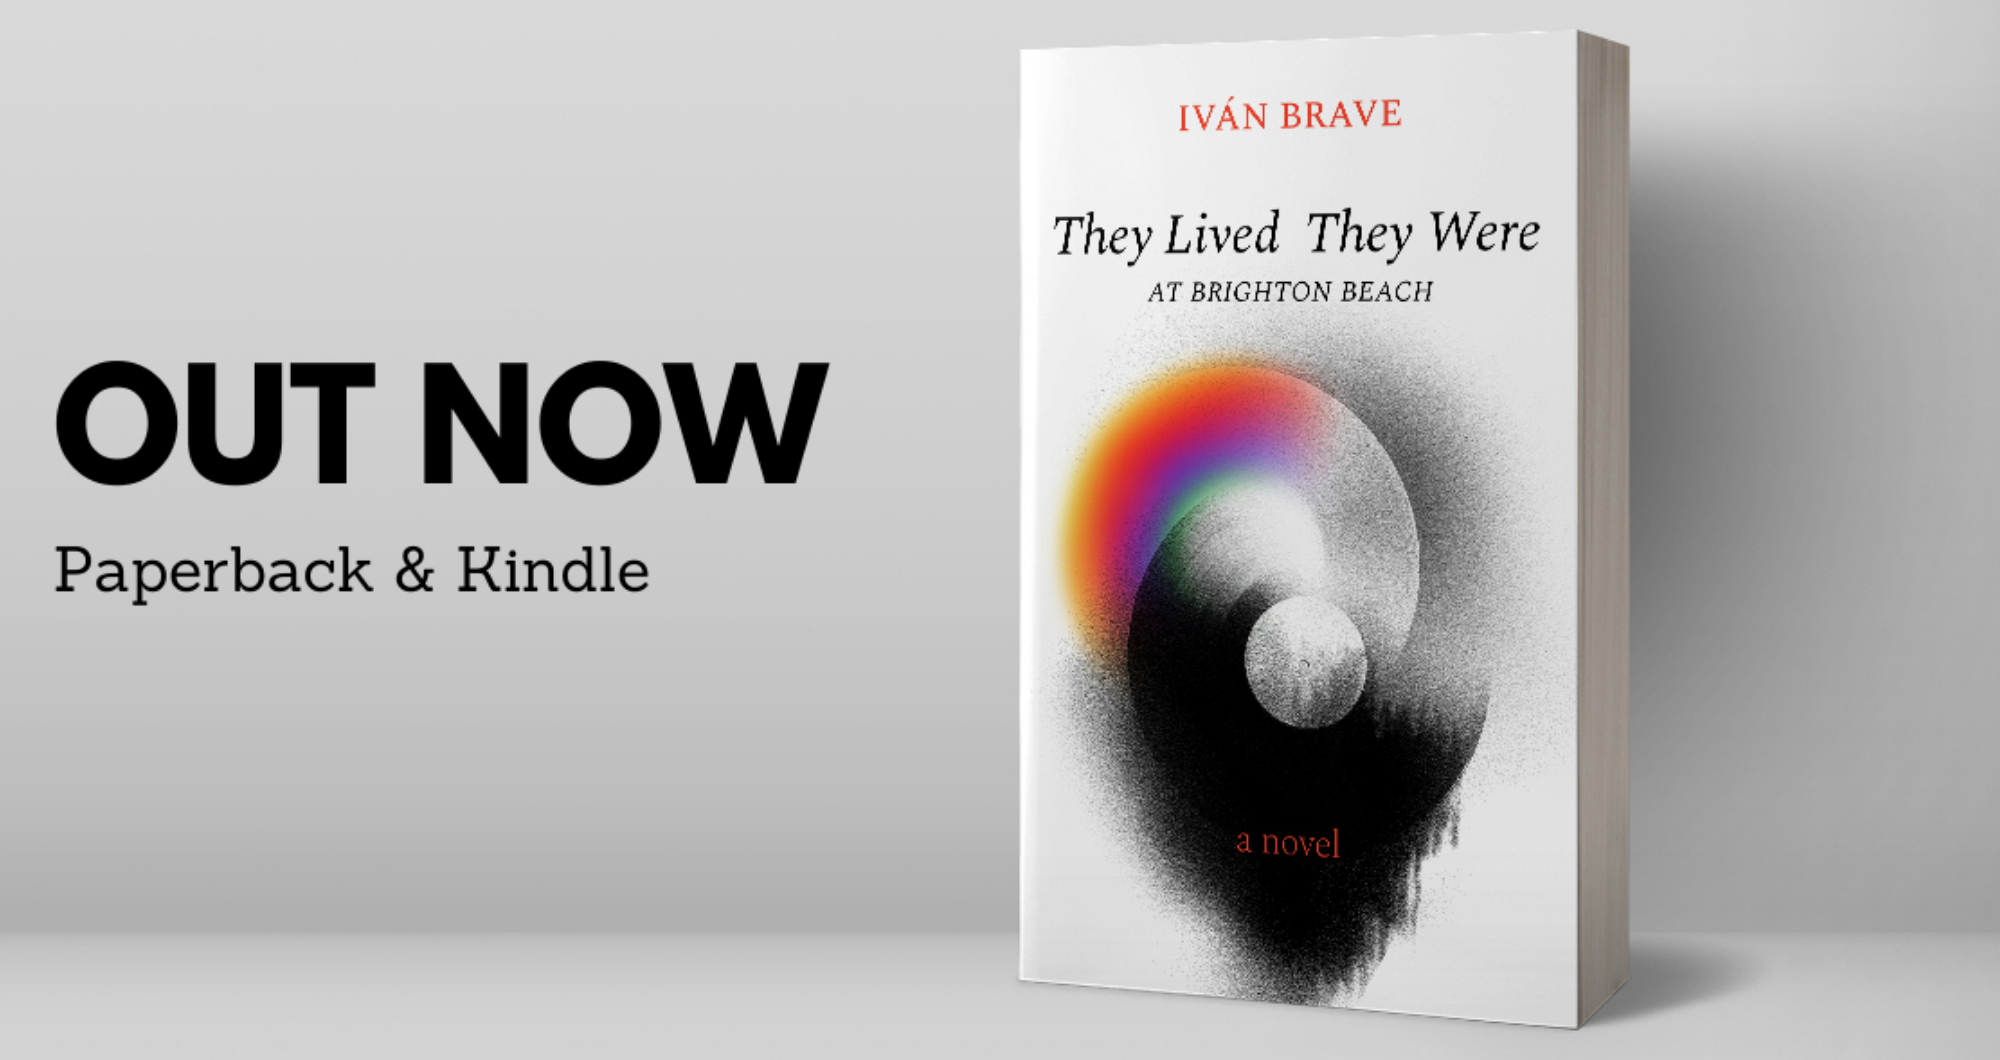 out now Ivan brave